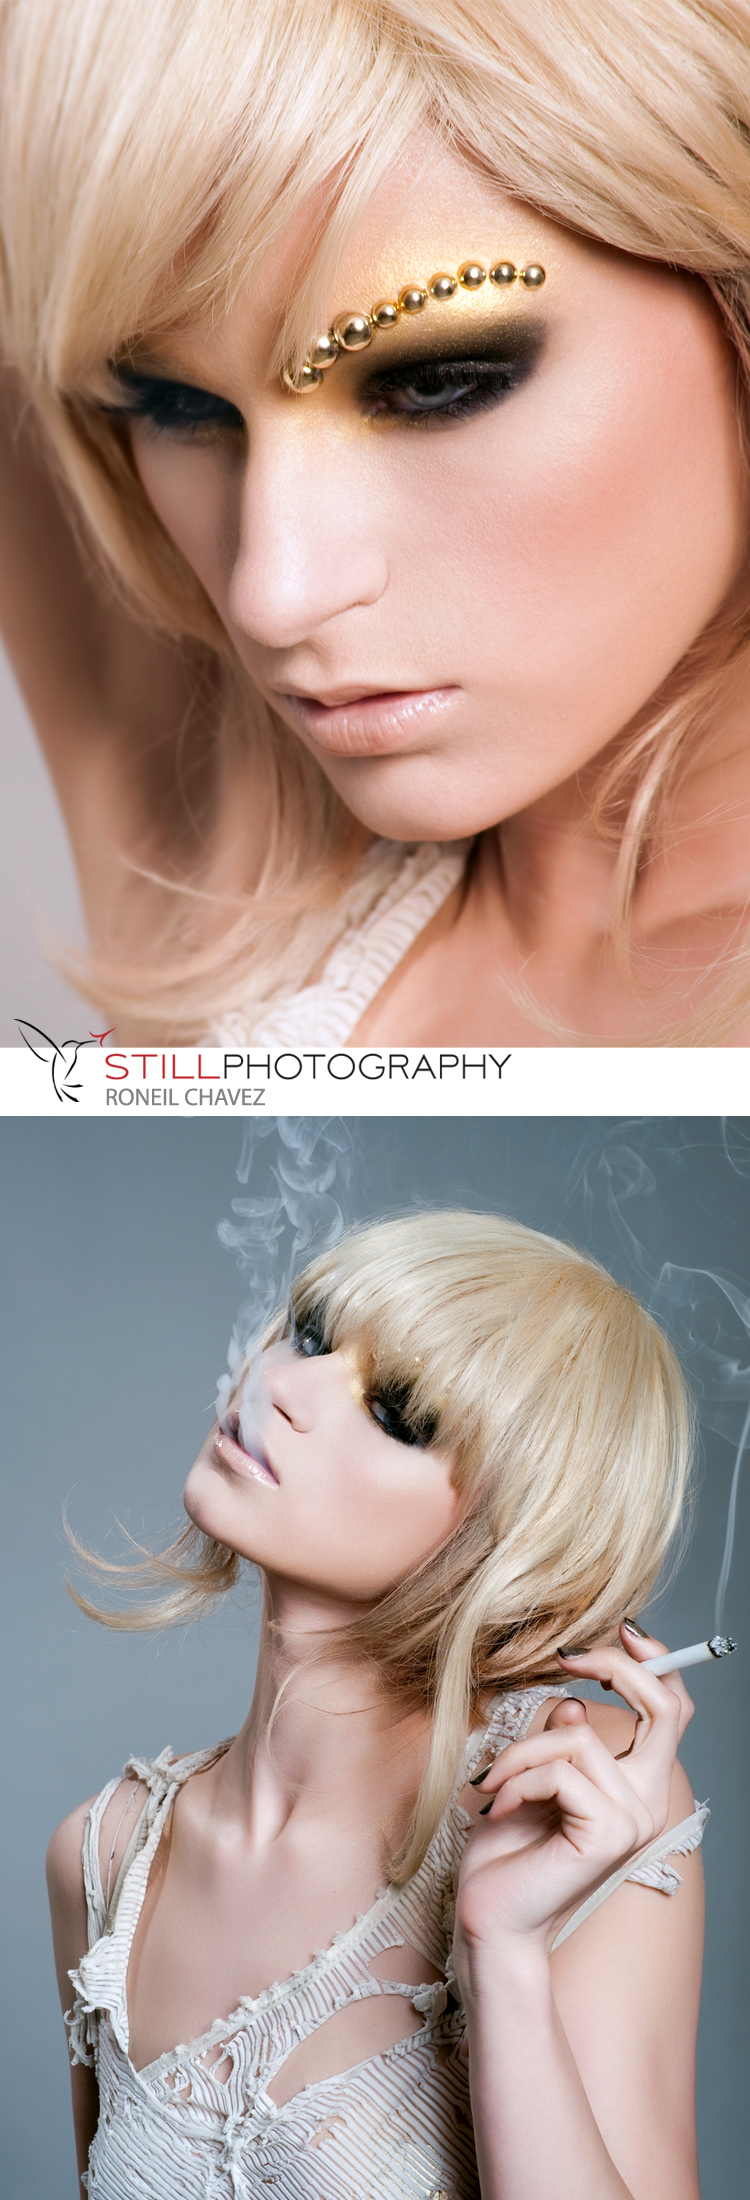 Female model photo shoot of just Muse by Roneil Chavez, makeup by Jeanne San Diego